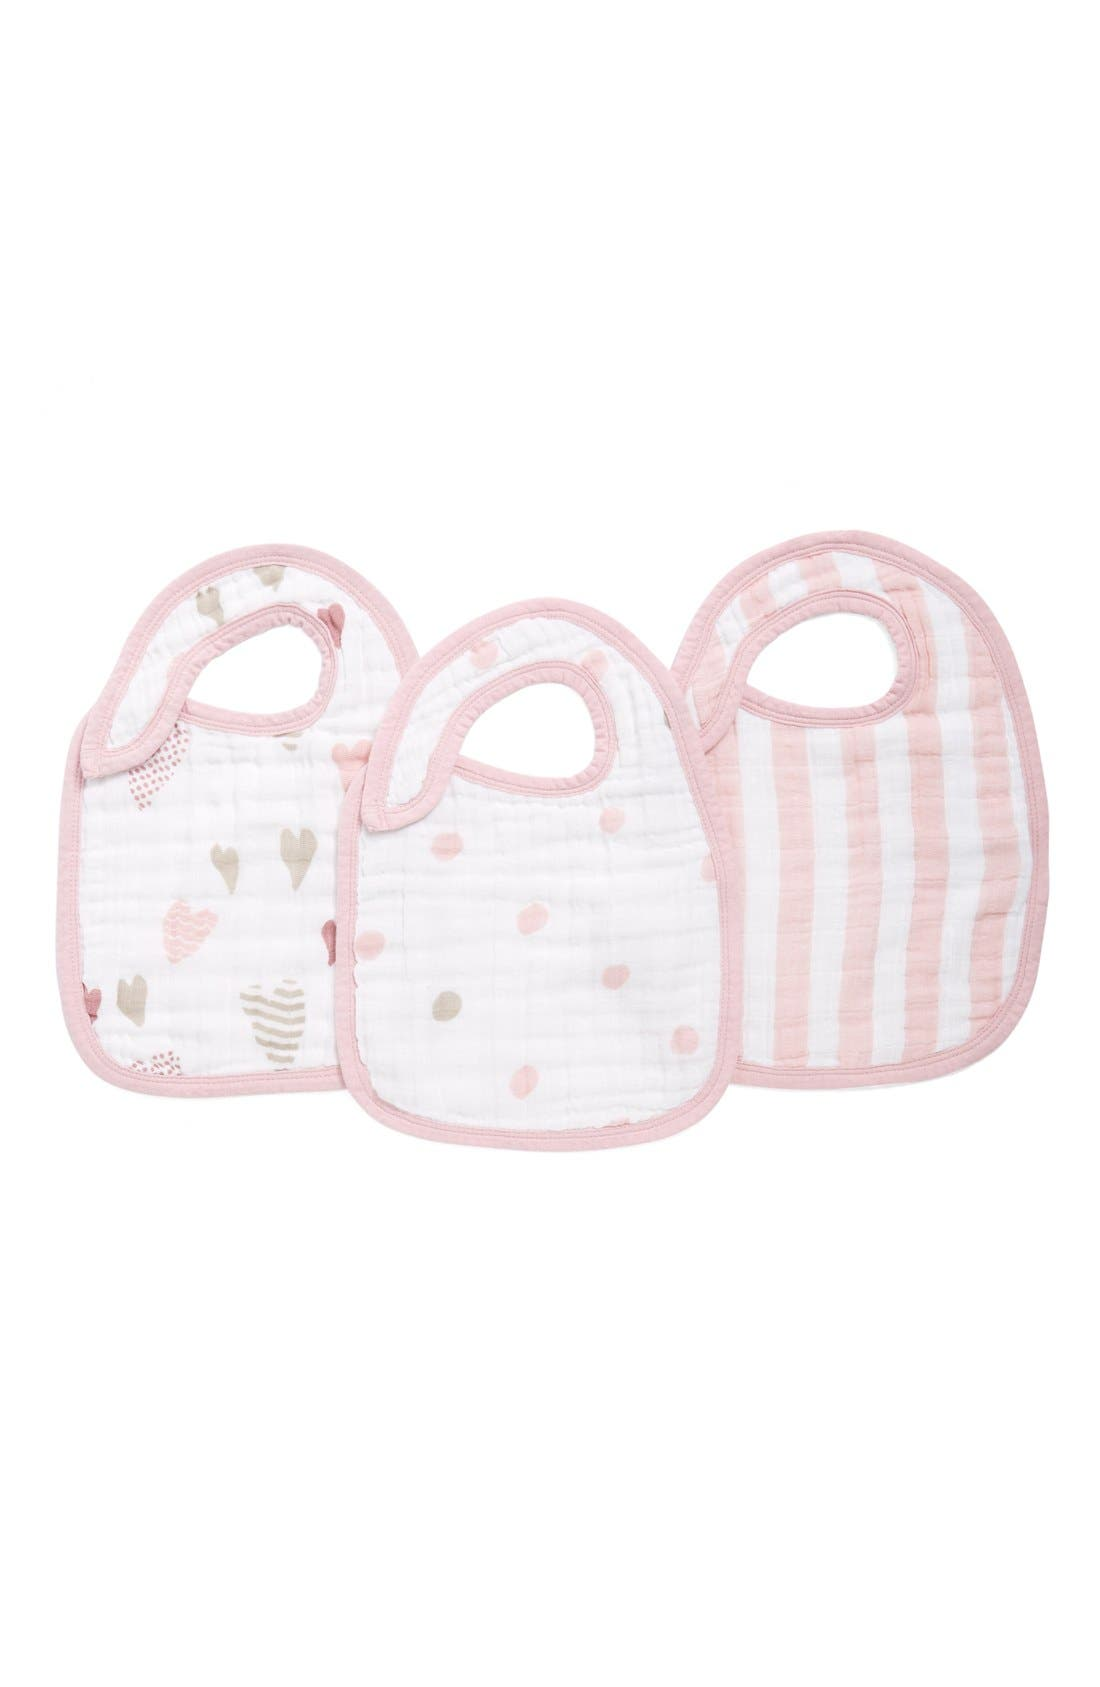 Alternate Image 1 Selected - aden + anais Classic Snap Bib (3-Pack)